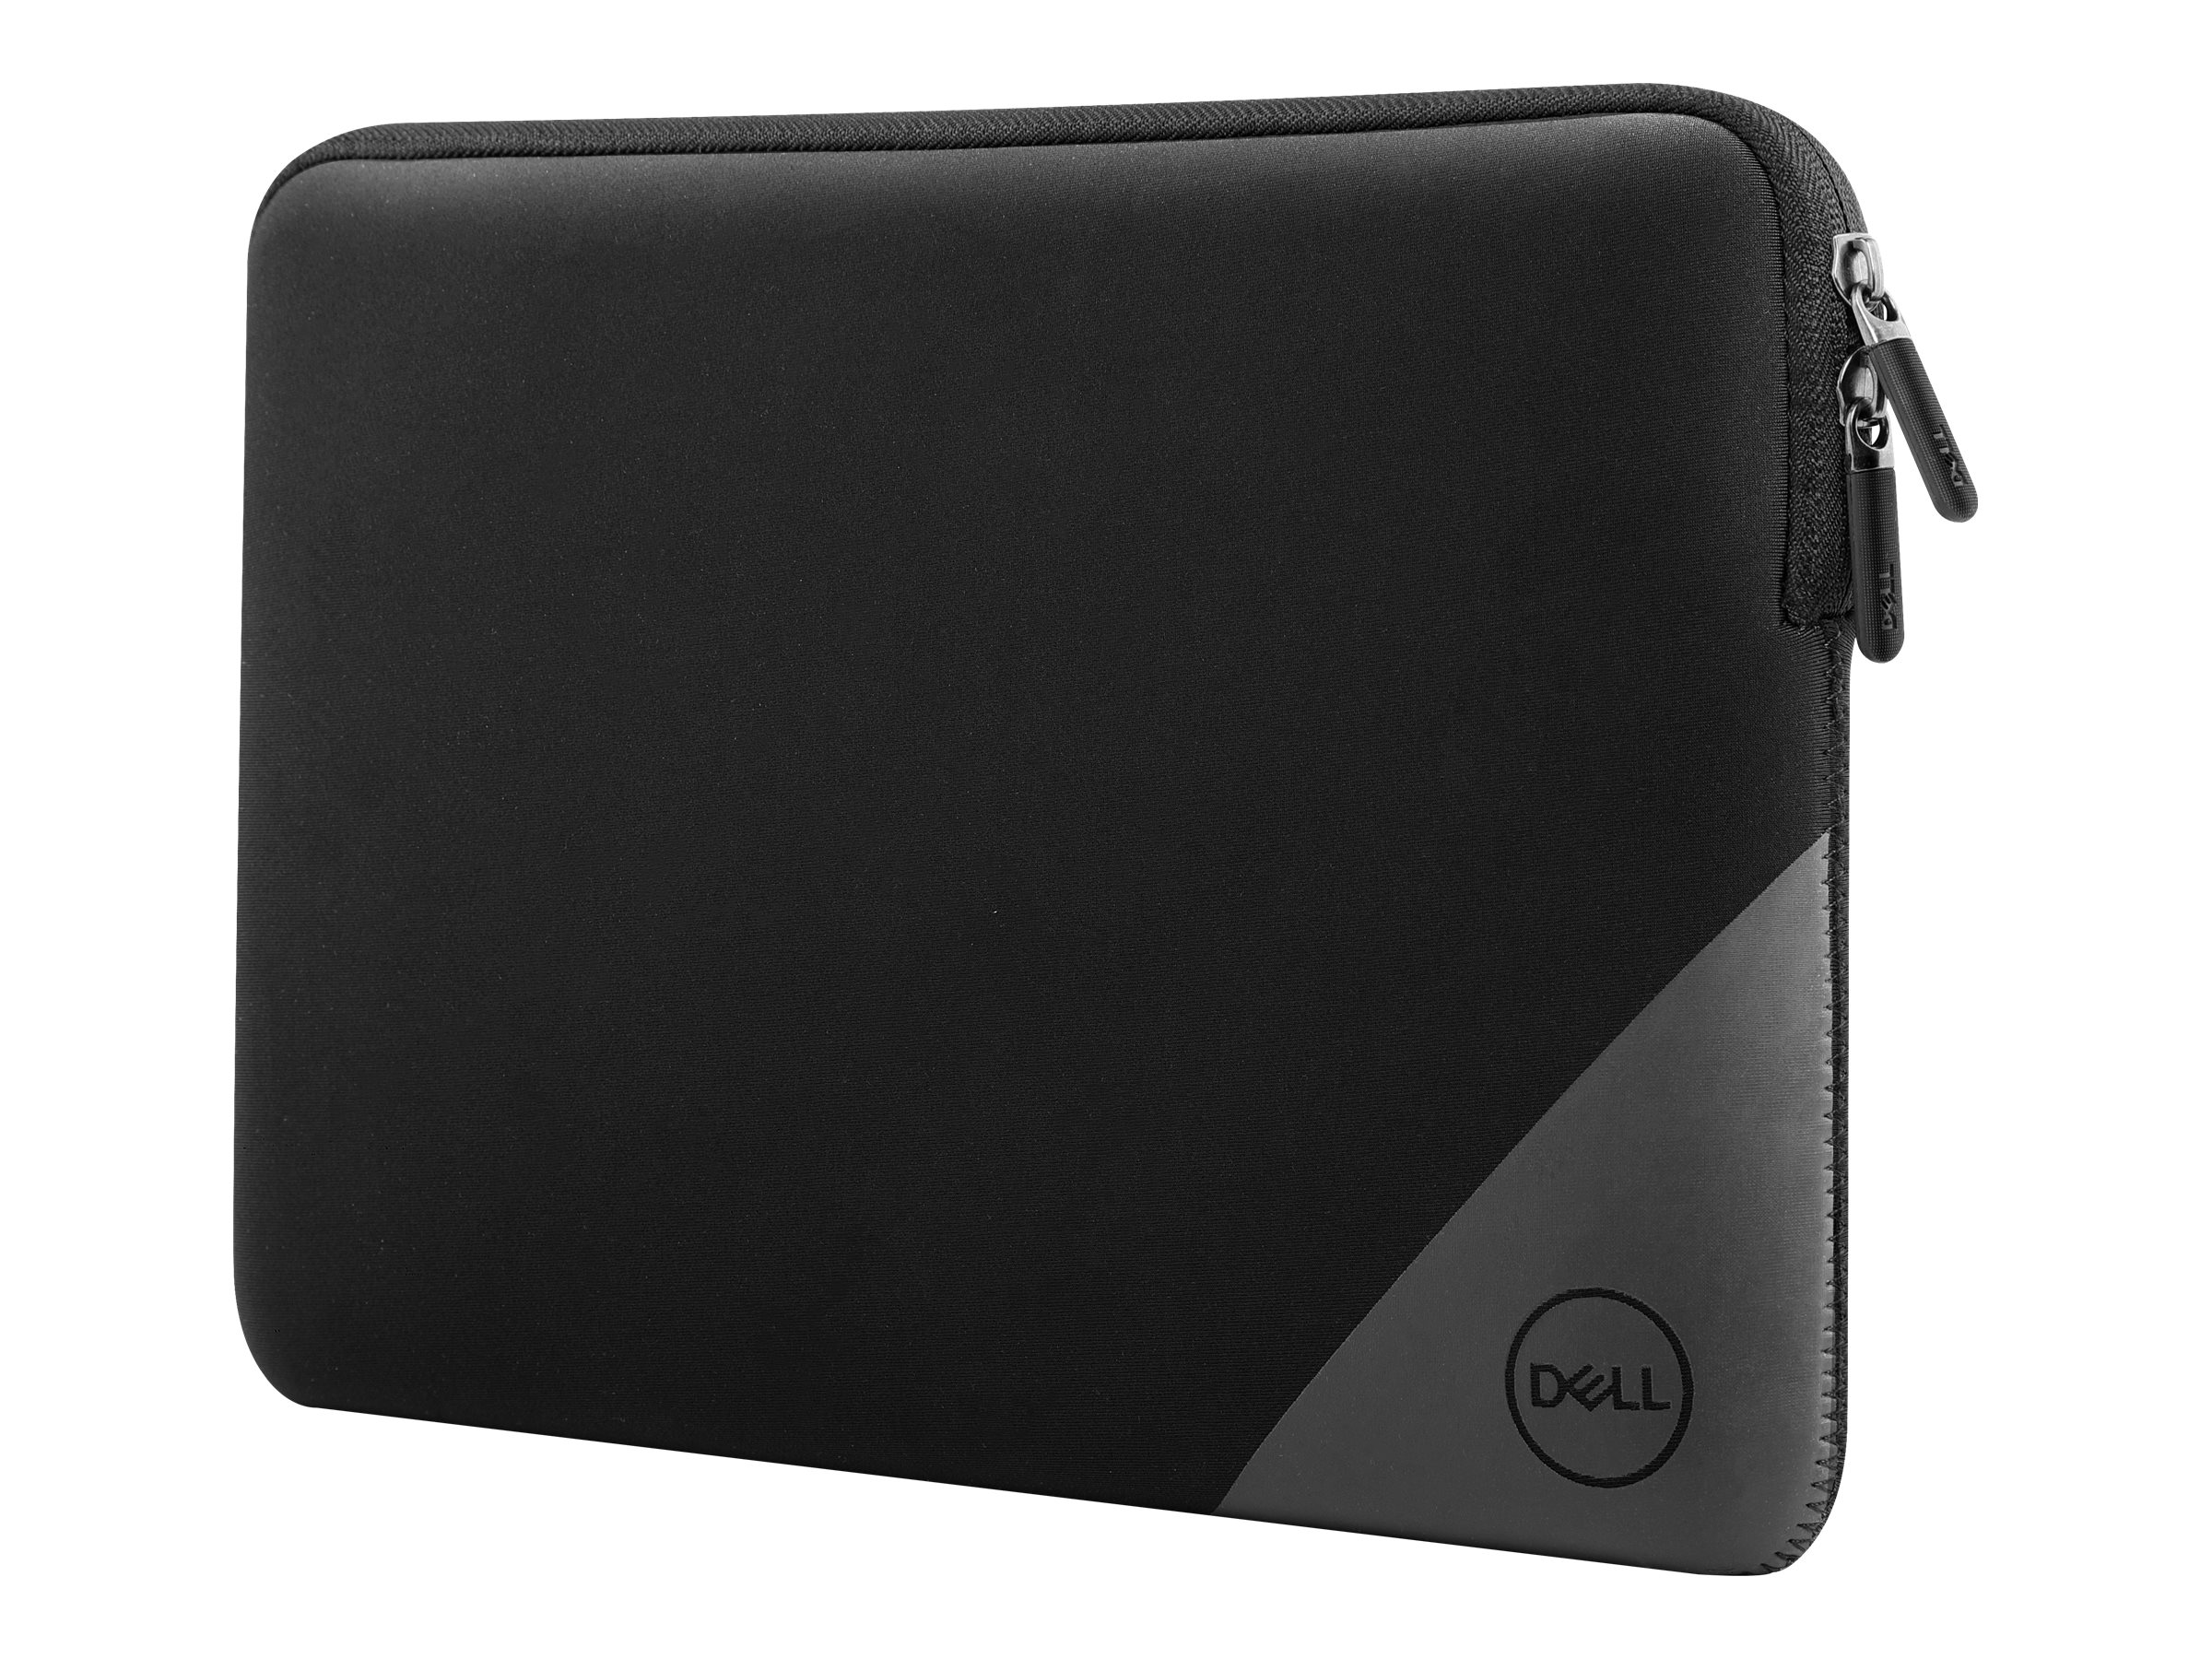 Dell Essential Sleeve 15 notebook sleeve